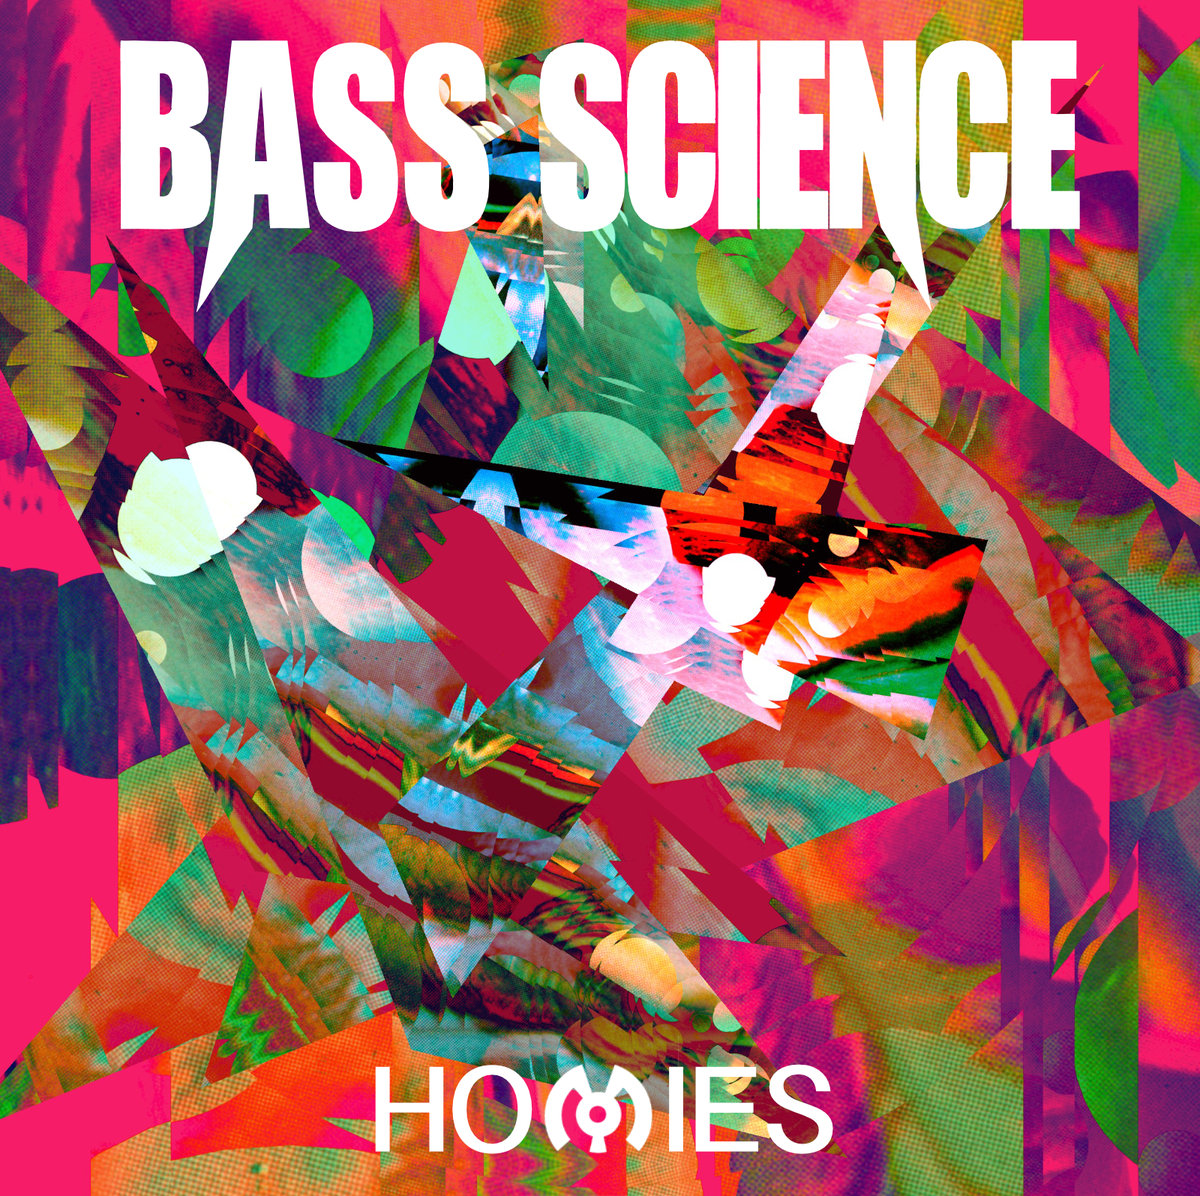 Bass Science feat. Dev79 - Broken Hearts @ 'Homies' album (electronic, dubstep)